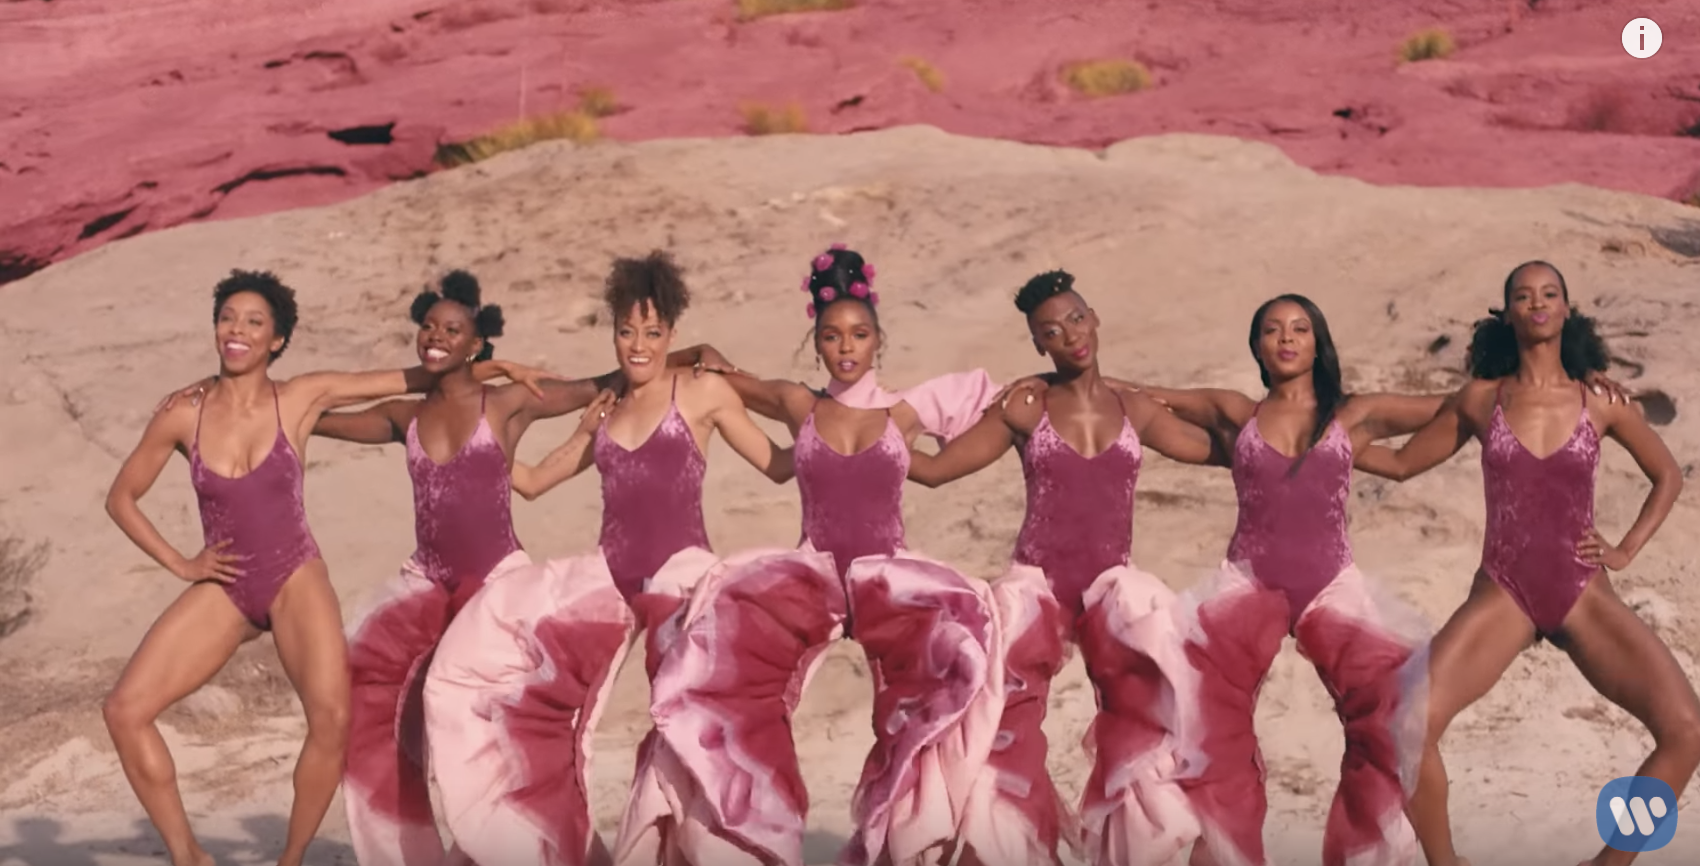 Janelle Monae Pynk Video